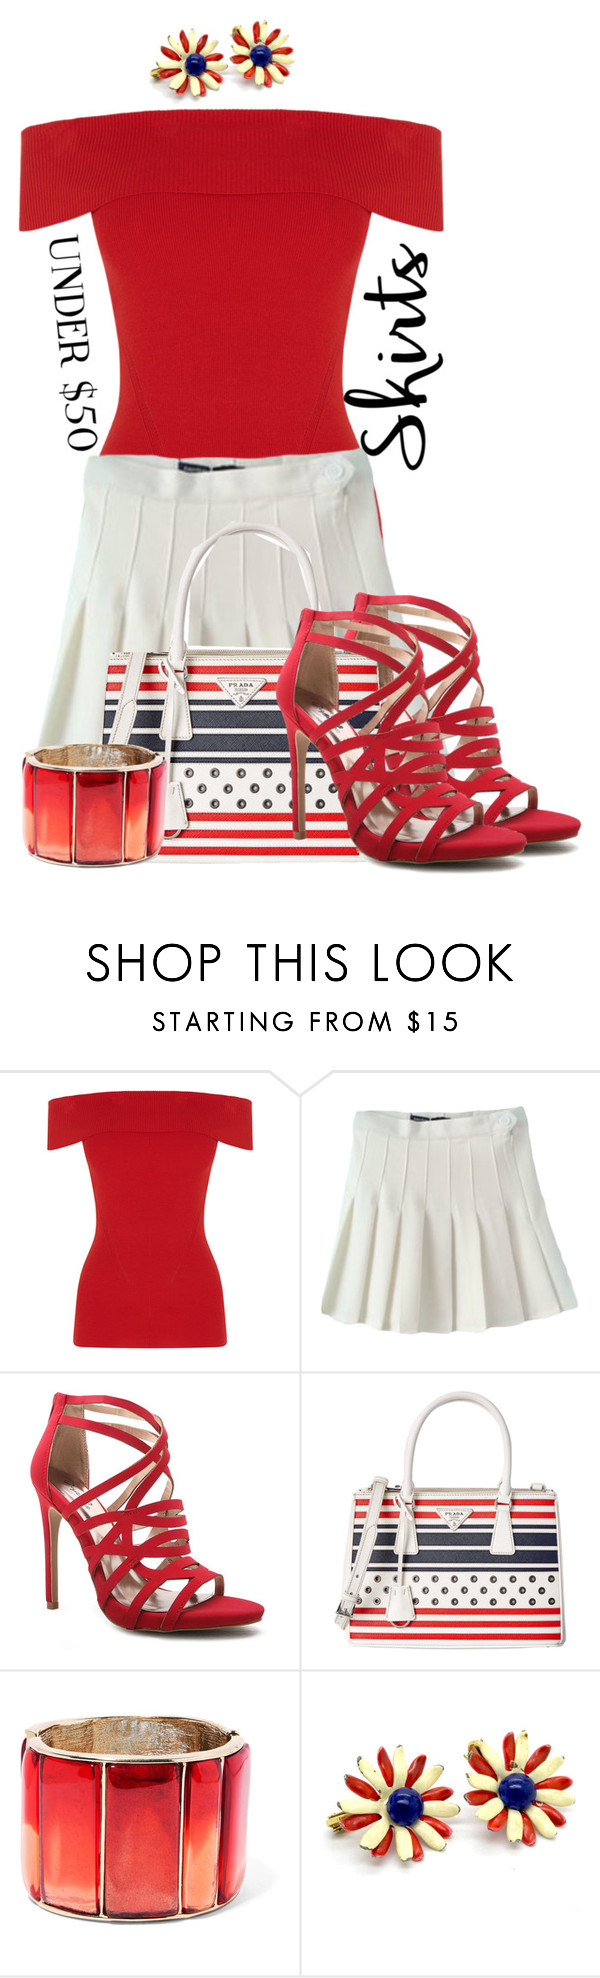 """Skirts Under $50"" by tlb0318 on Polyvore featuring Oasis, Qupid, Prada and Oscar de la Renta"